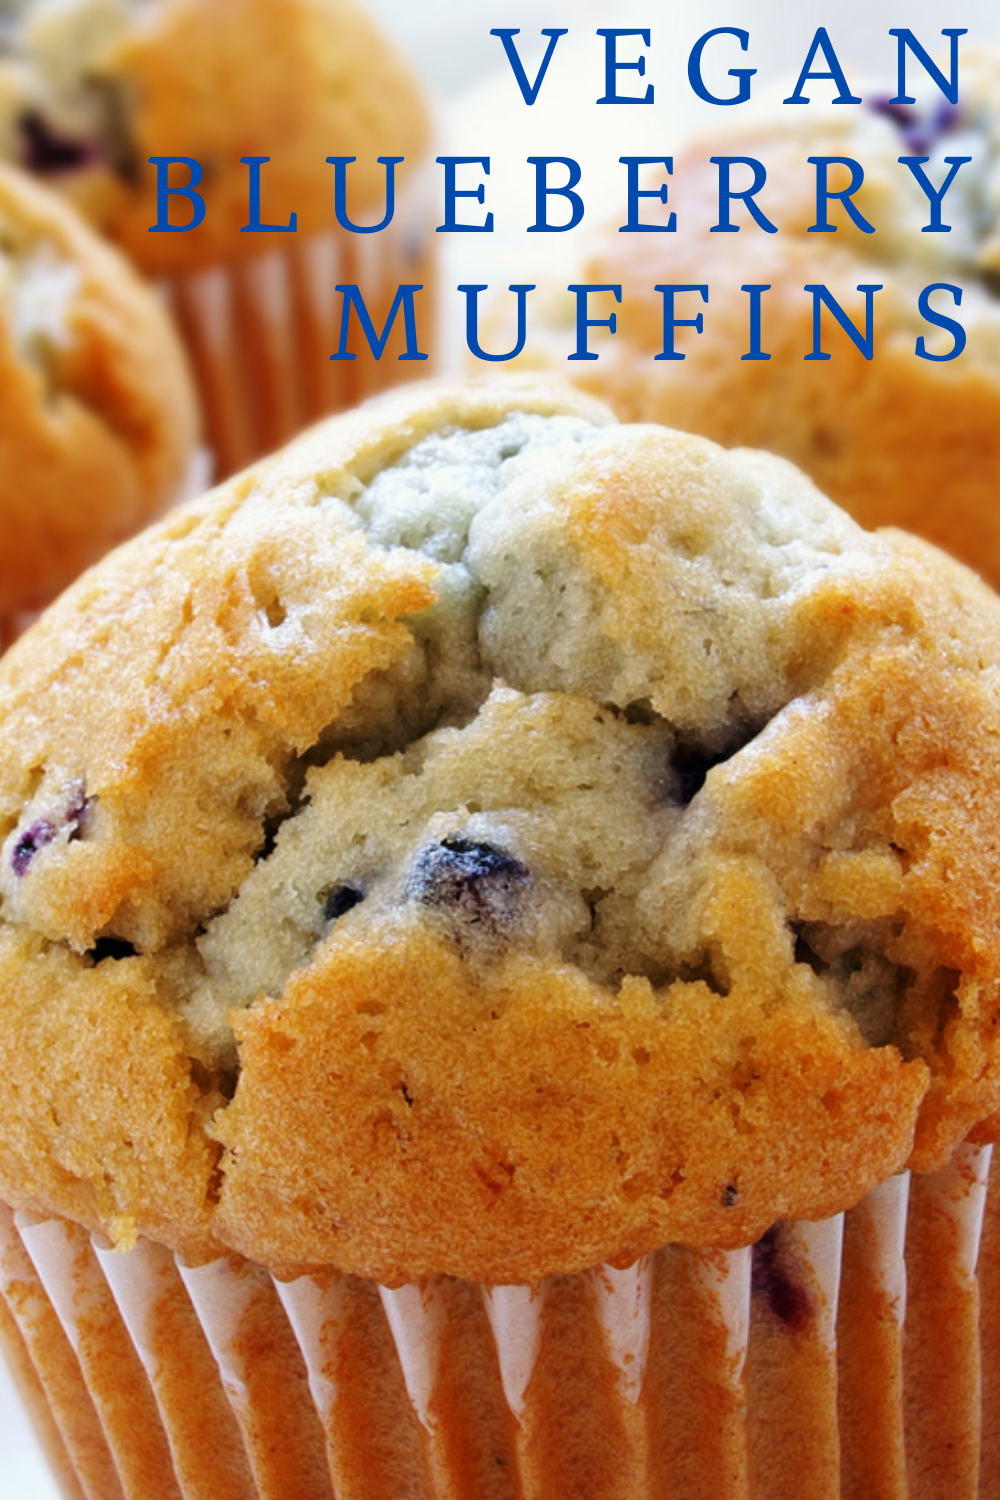 Vegan Blueberry Muffins! Dairy-free, vegan, and ready in 30 minutes! Perfect for packing in lunches or a quick breakfast on the go! #veganblueberrymuffins #dairyfreeblueberryrecipes #thiswifecooksrecipes #veganeasterrecipes #veganbrunchrecipes #easyveganmuffins via @thiswifecooks